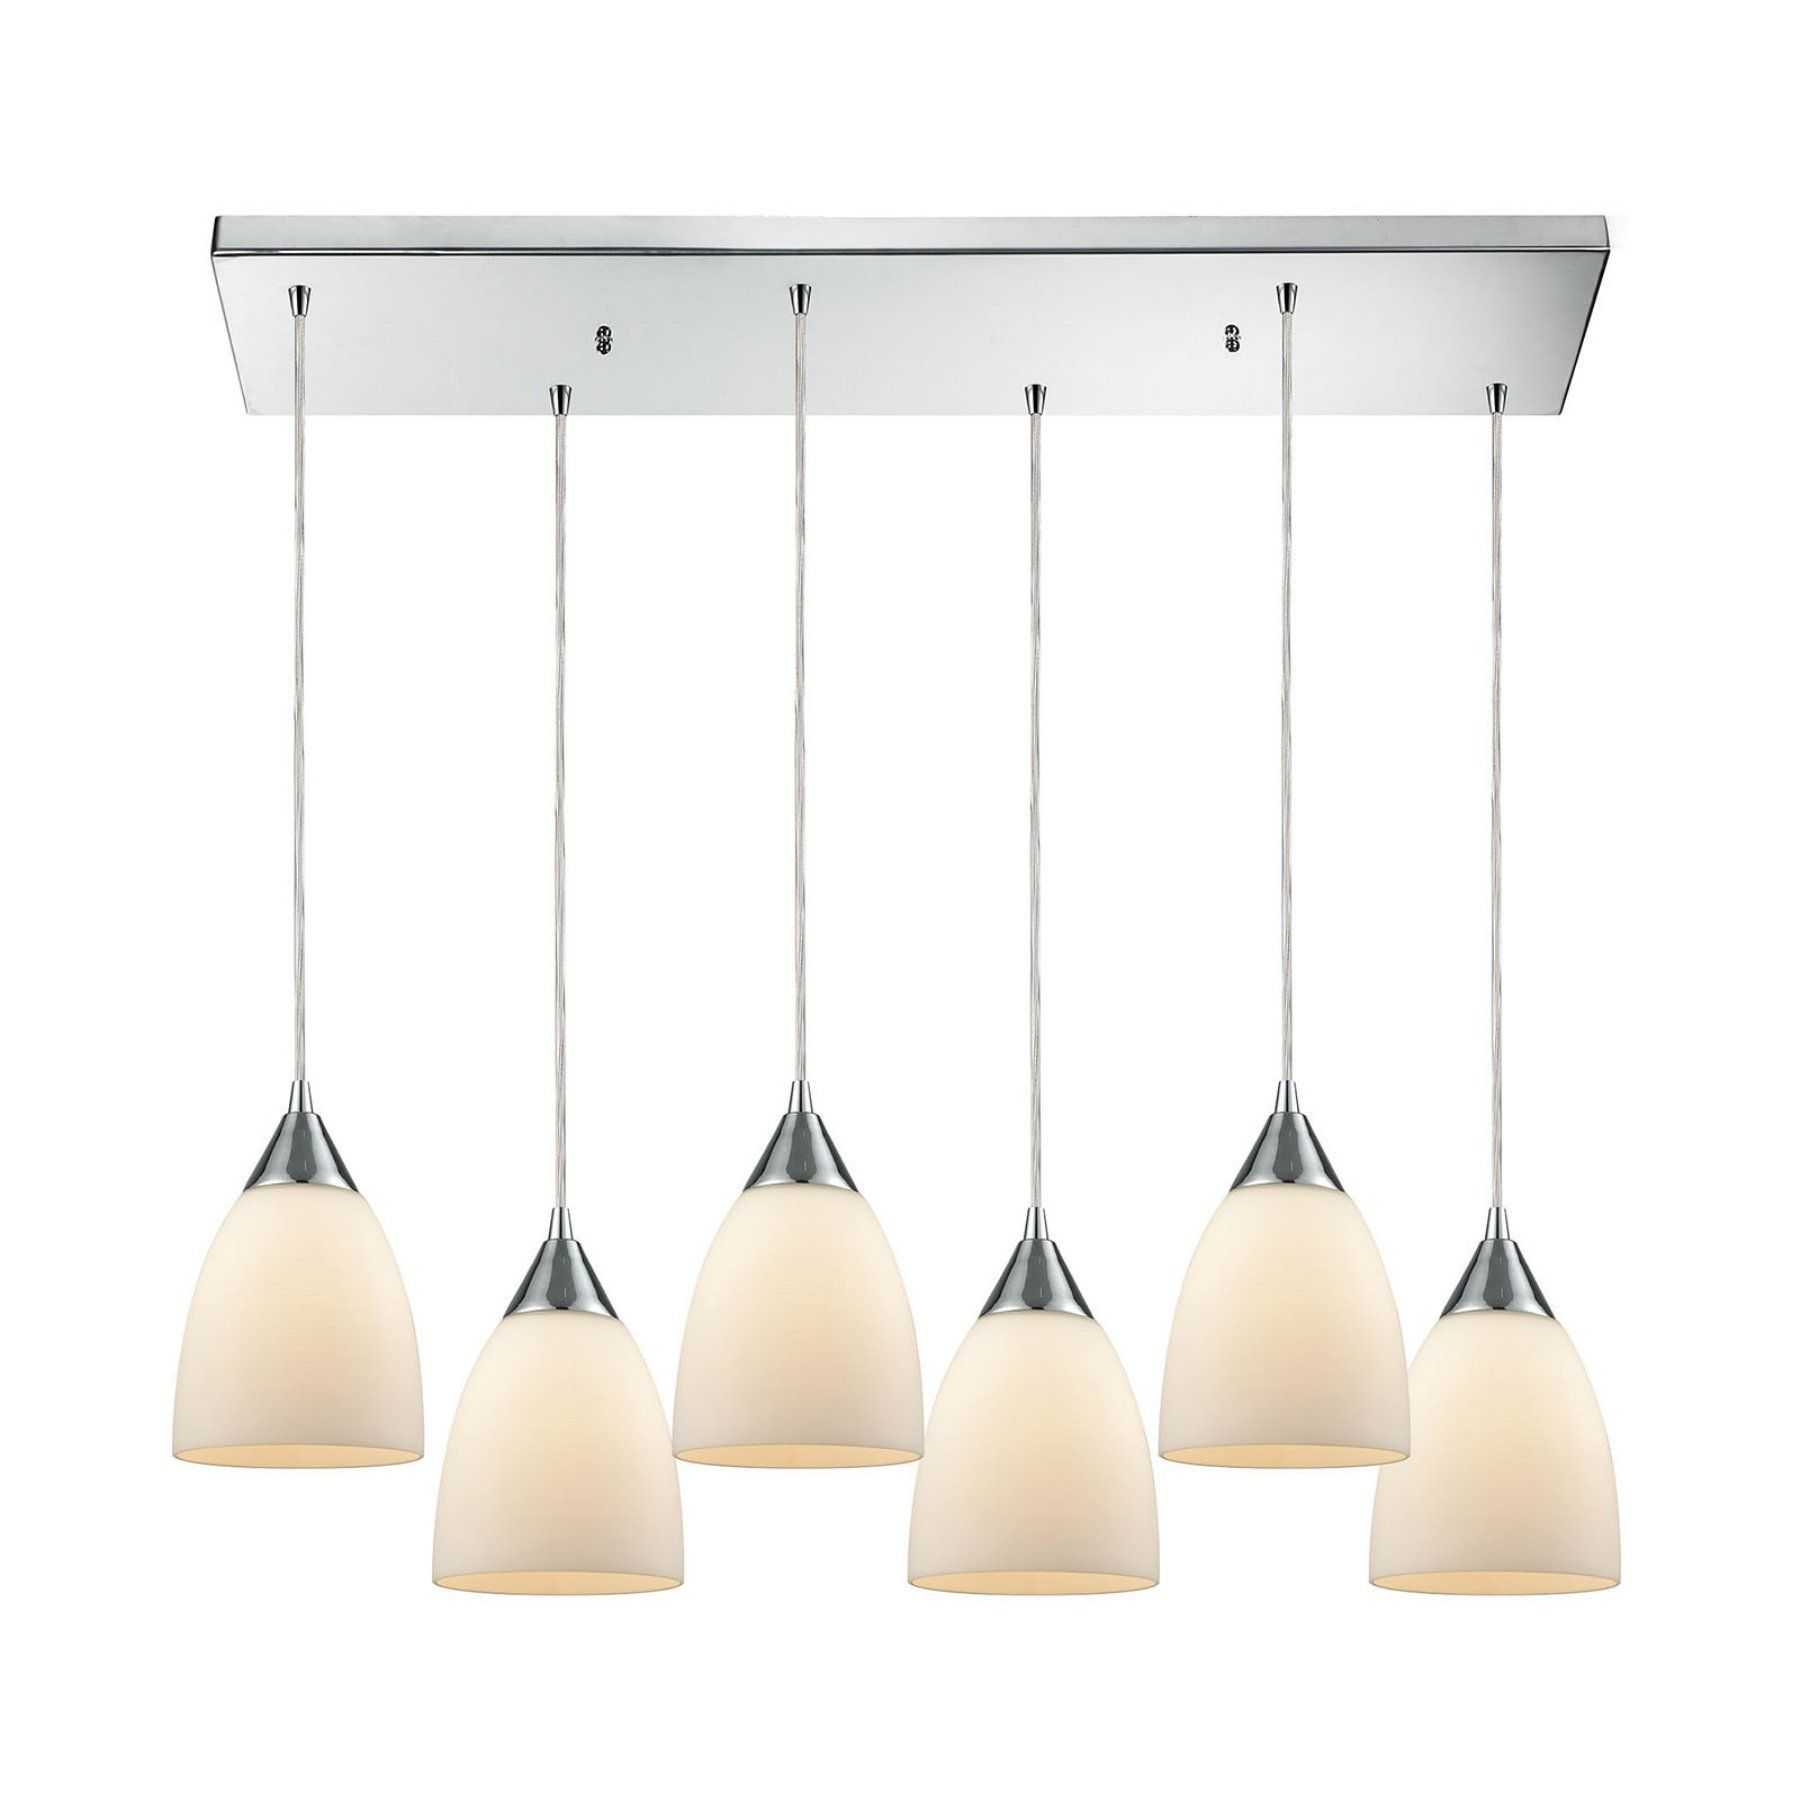 ELK Lighting 565 Merida 6 Light Pendant Light - 56520/6RC